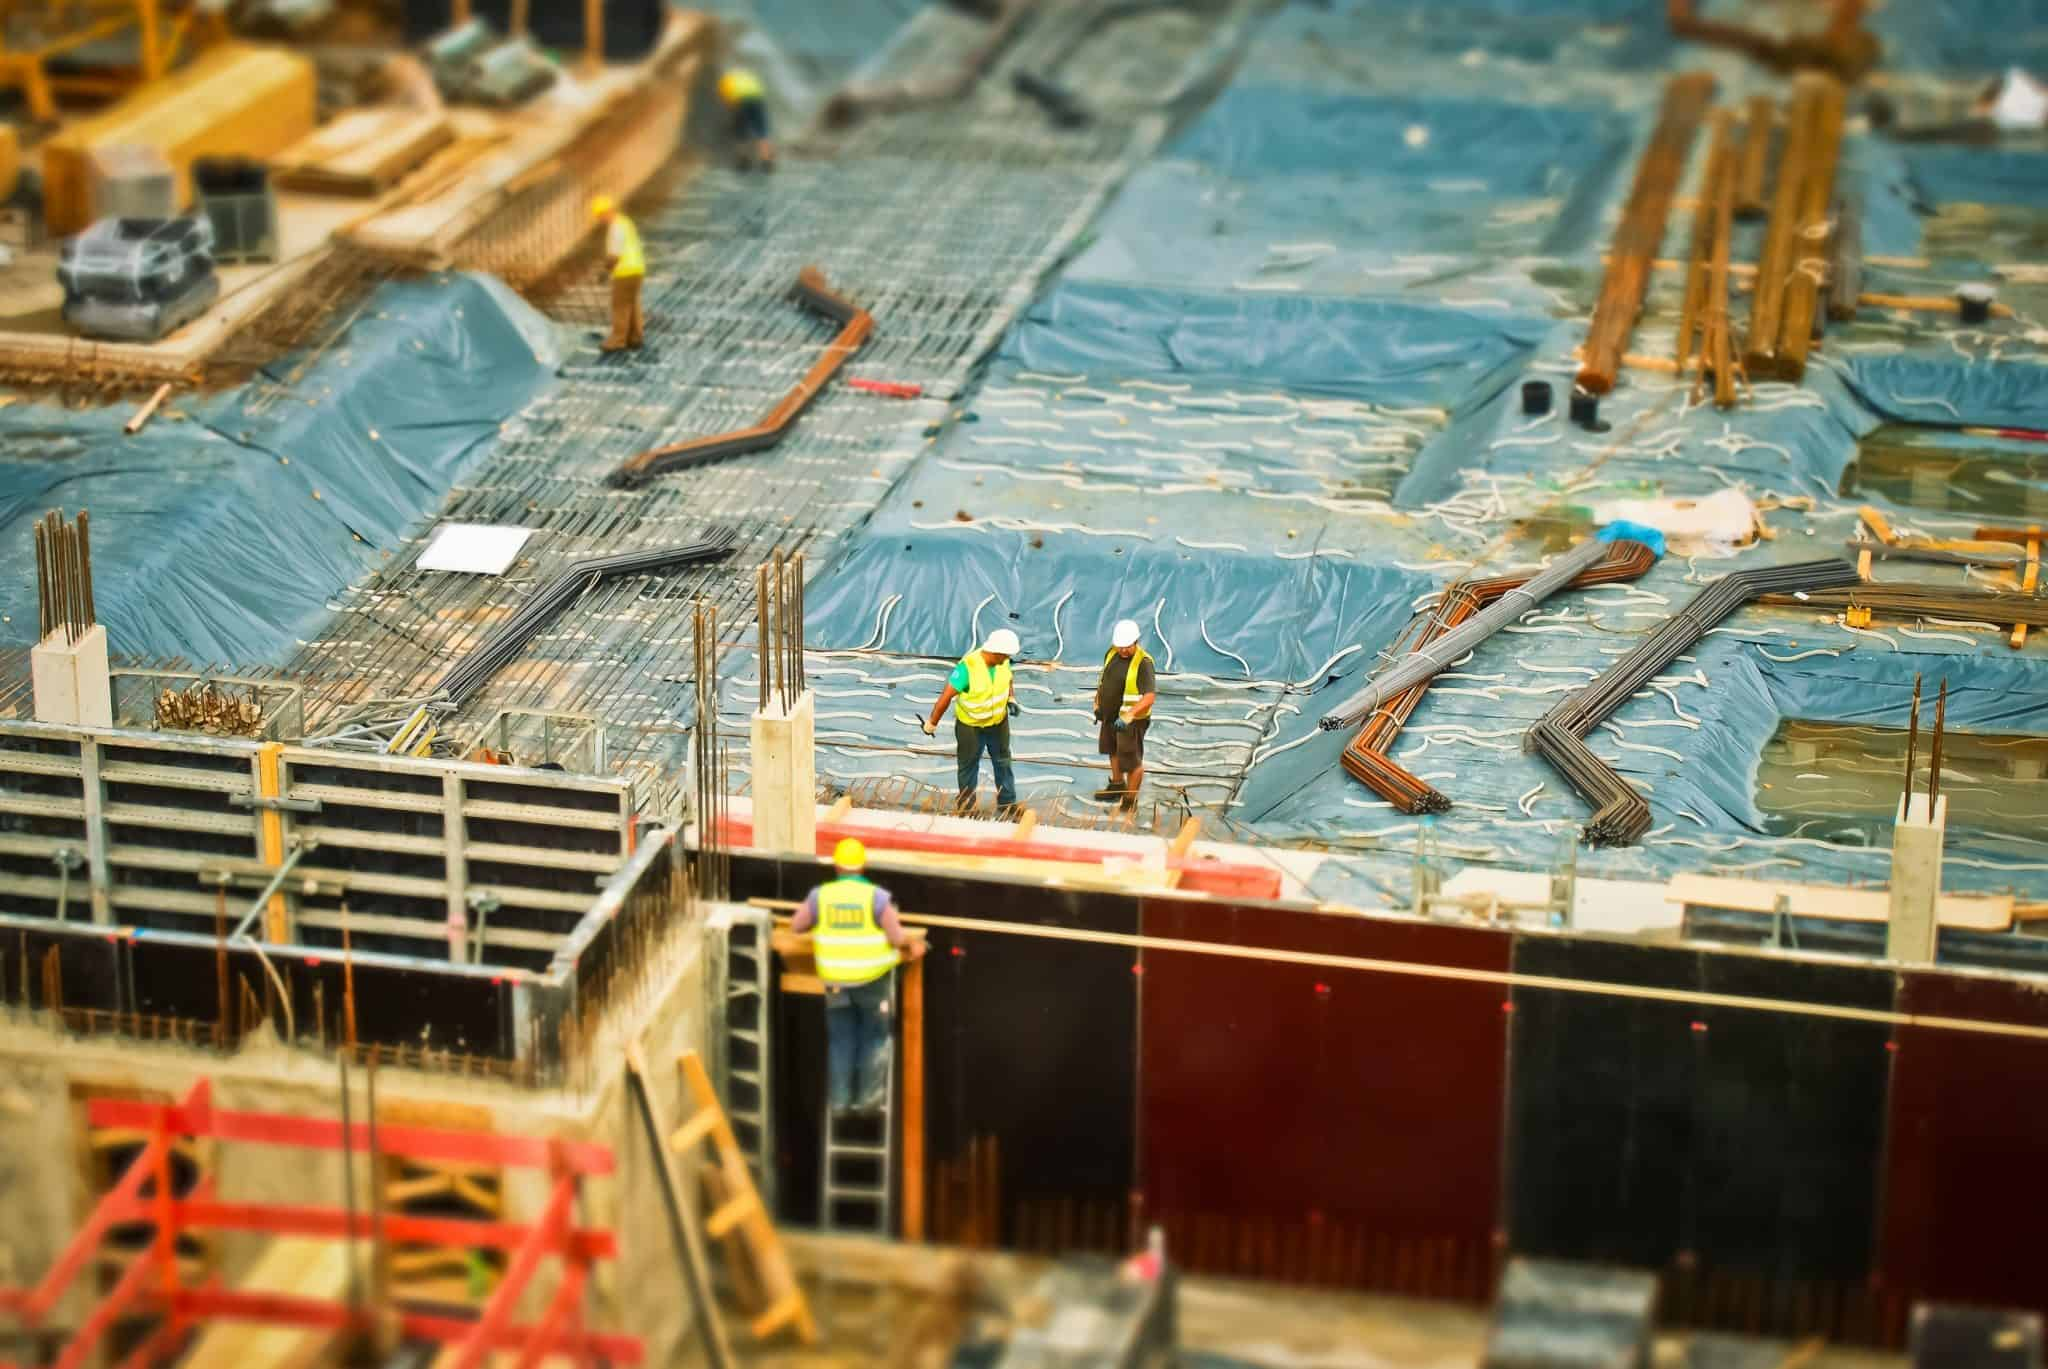 philadelphia construction site wrongful death atto - Philadelphia Construction Site Wrongful Death Attorneys